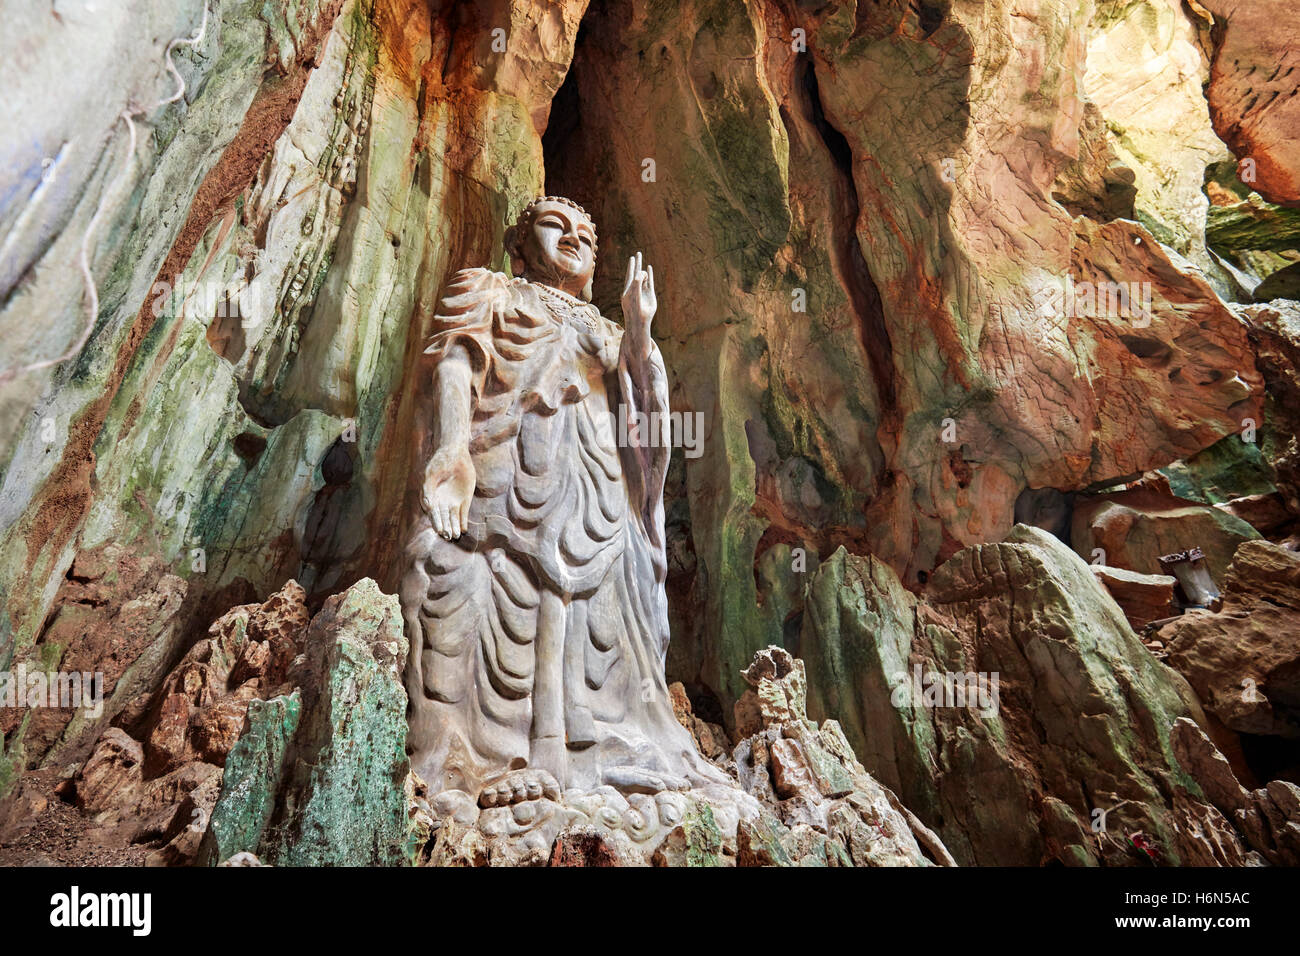 The Upright Buddha statue in Tang Chon Cave. Thuy Son Mountain, The Marble Mountains, Da Nang, Vietnam. - Stock Image